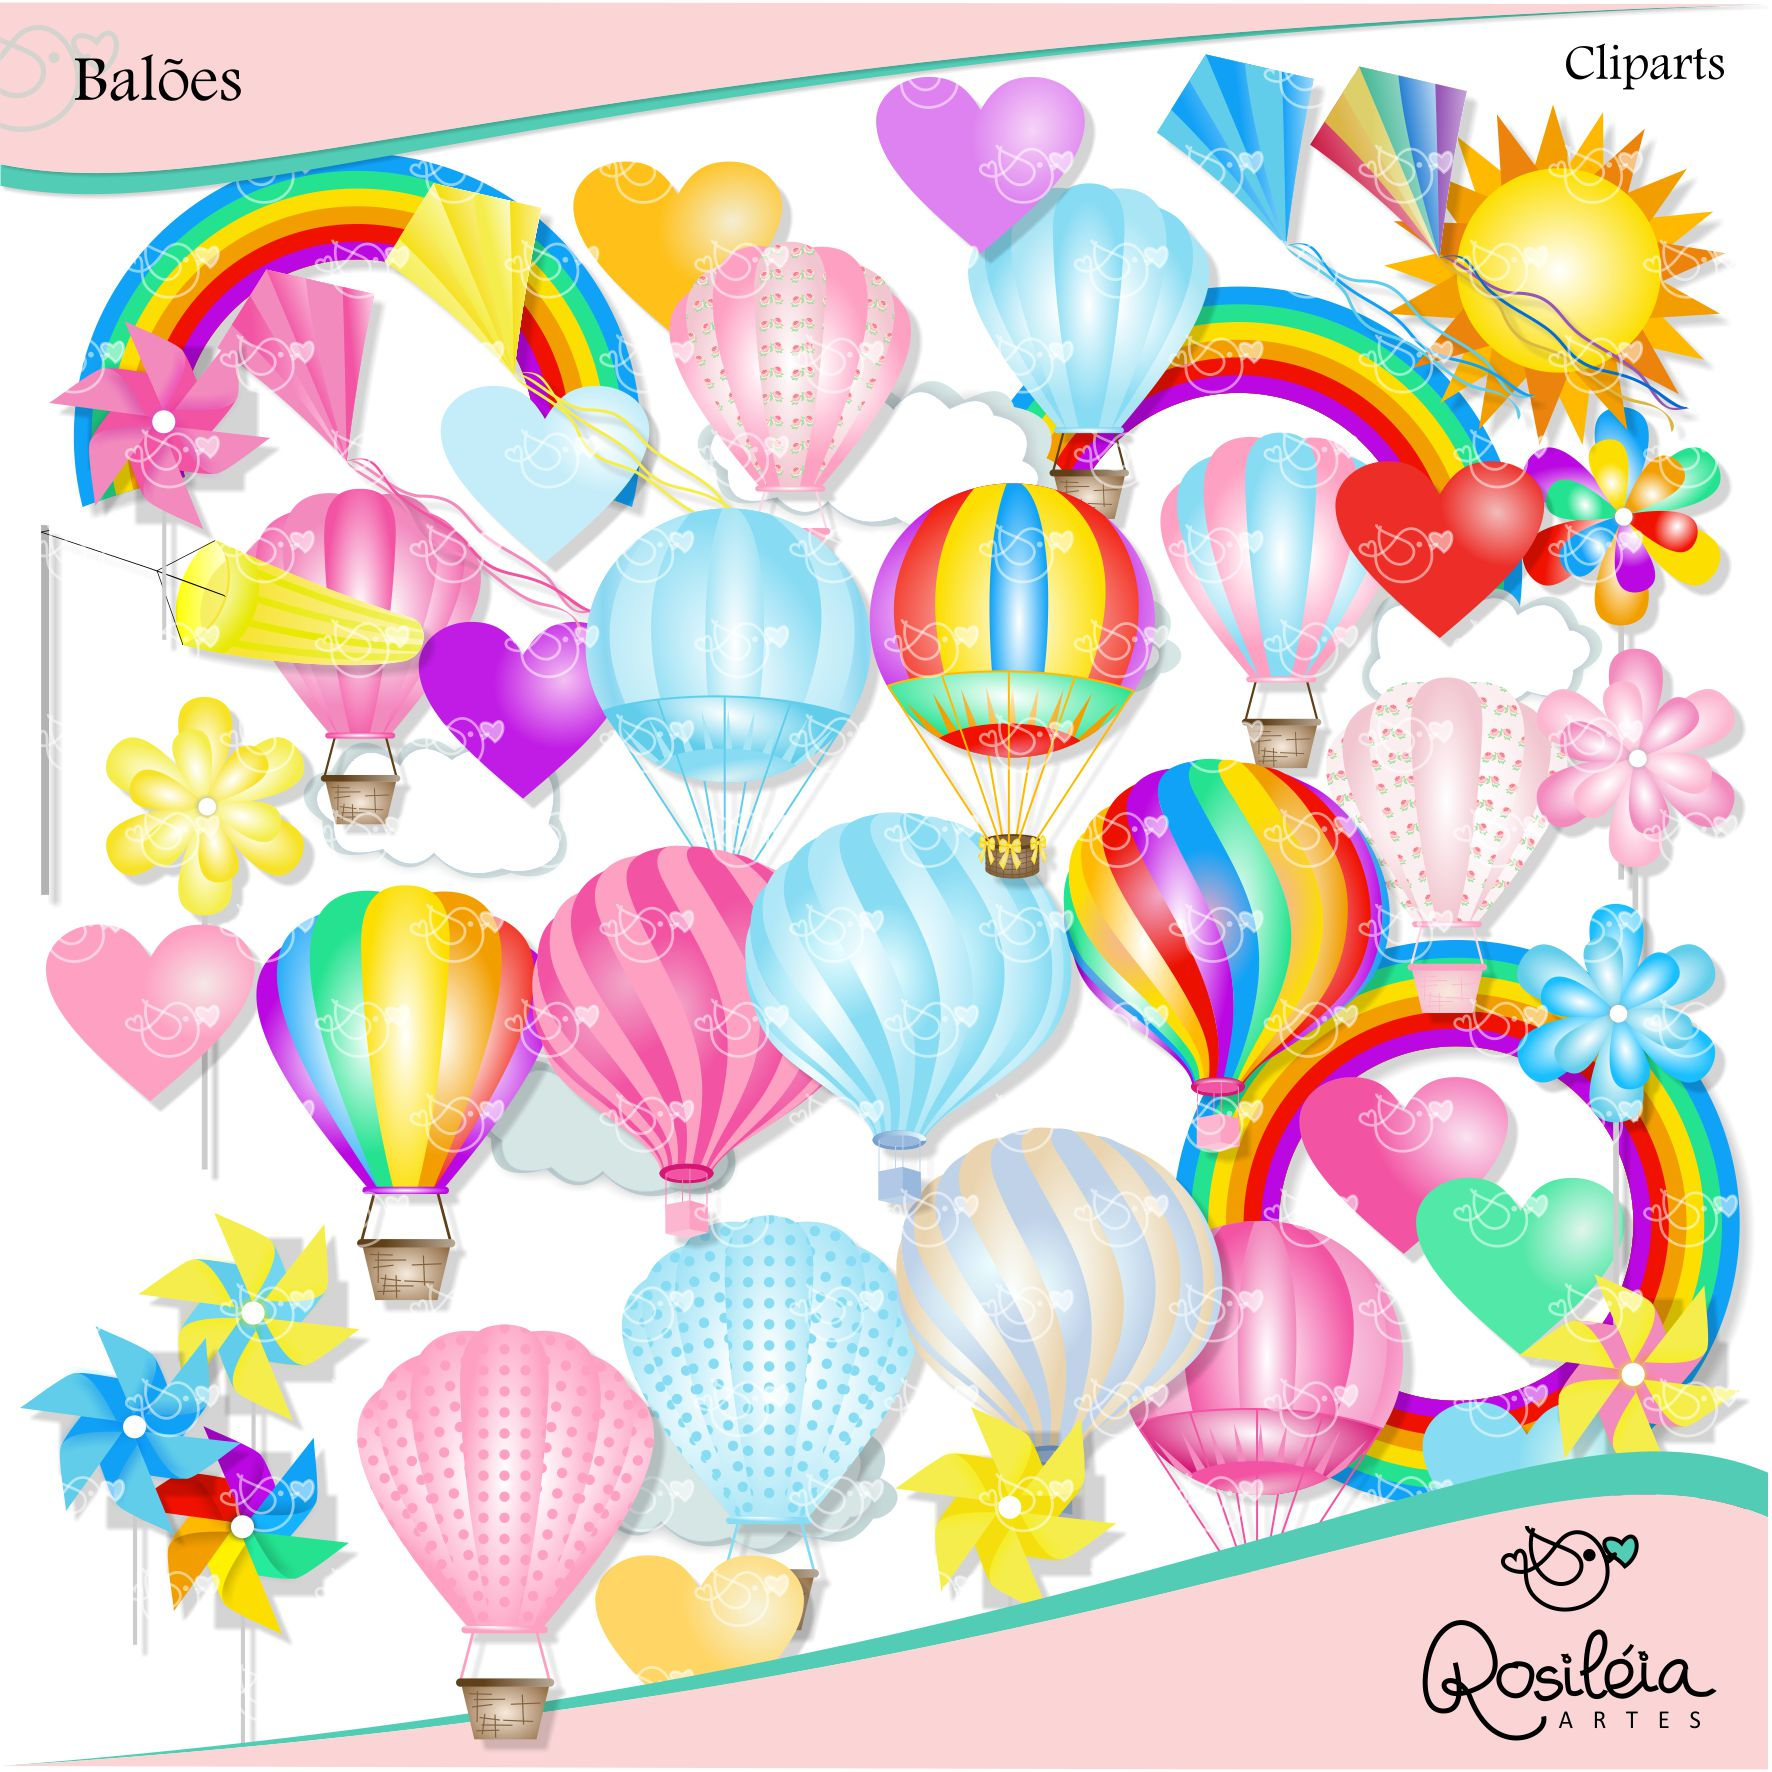 Balloons Clipart instant download PNG file 300 dpi.